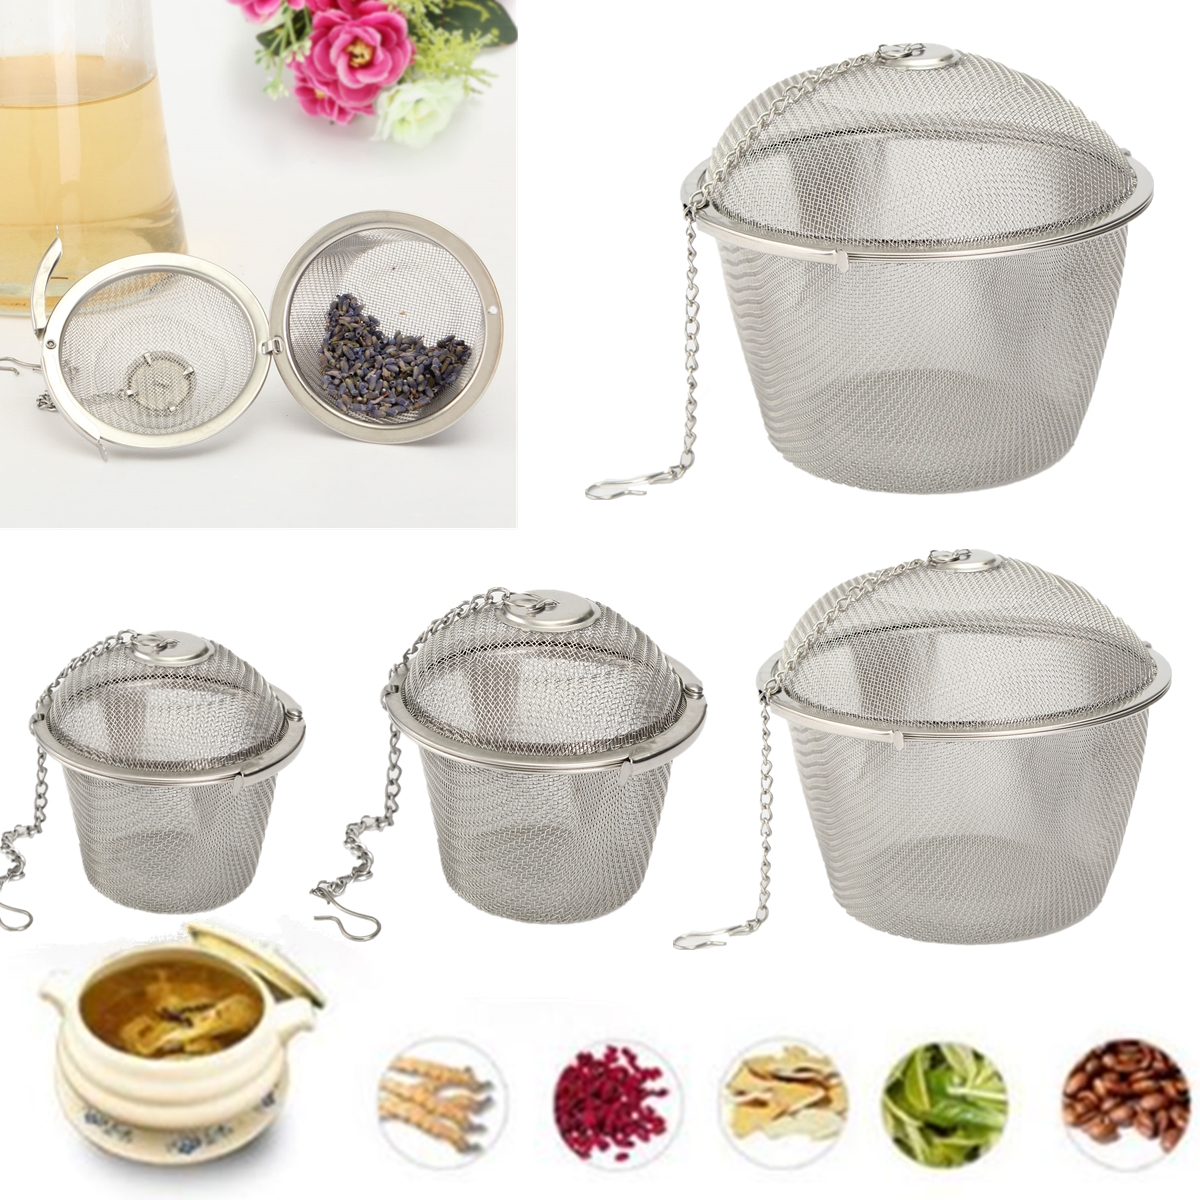 4.5/8.5/11cm Stainless Steel Reusable Mesh Herbal Ball Tea Spice Strainer Teakettle Filter